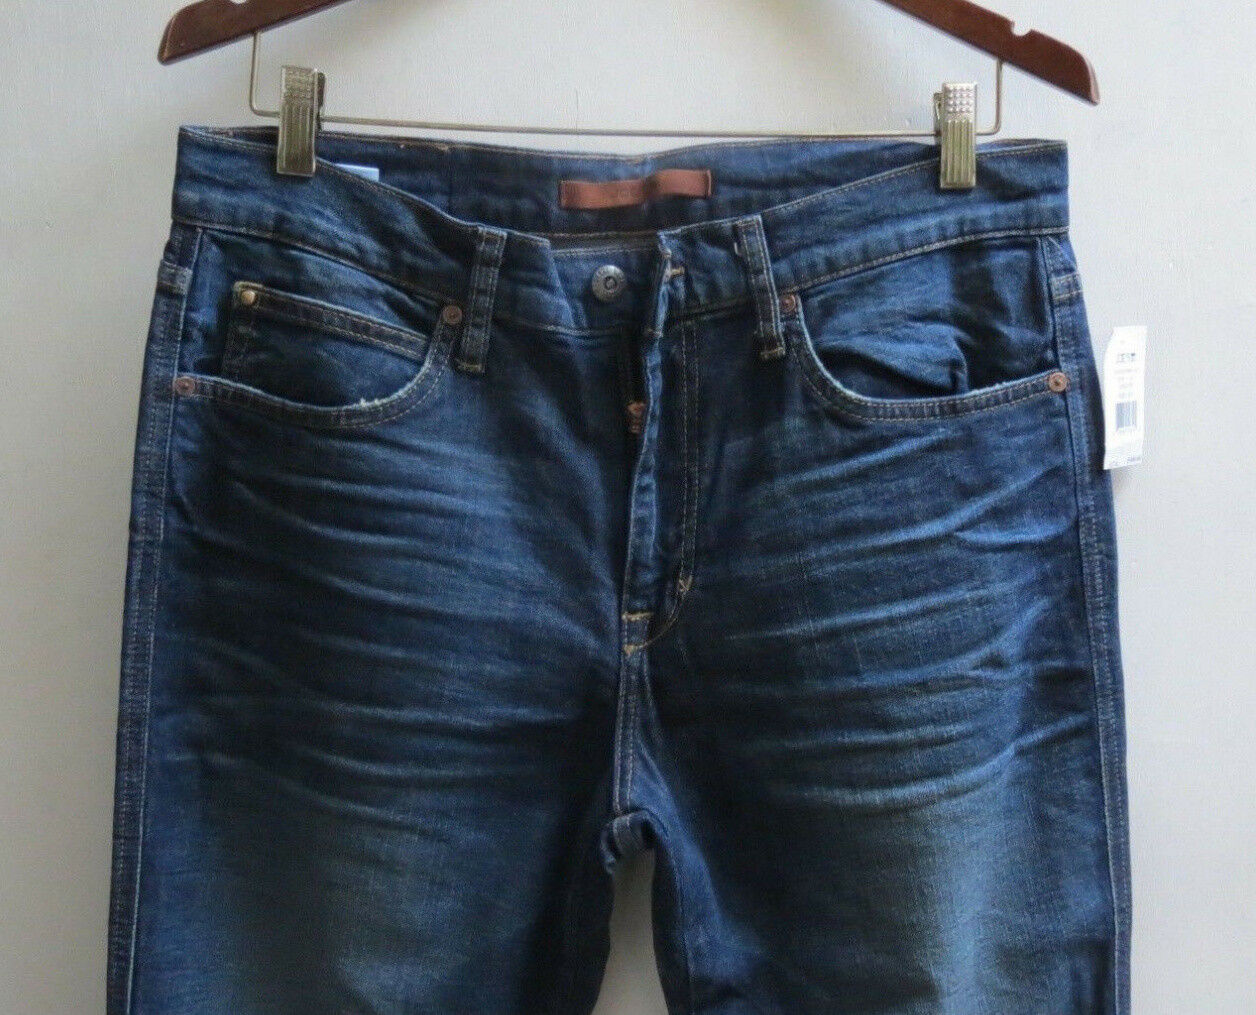 Joe's Jeans 36 W x 34 Vintage Reserve Savile Row Tailored Fit Brand New w  Tags